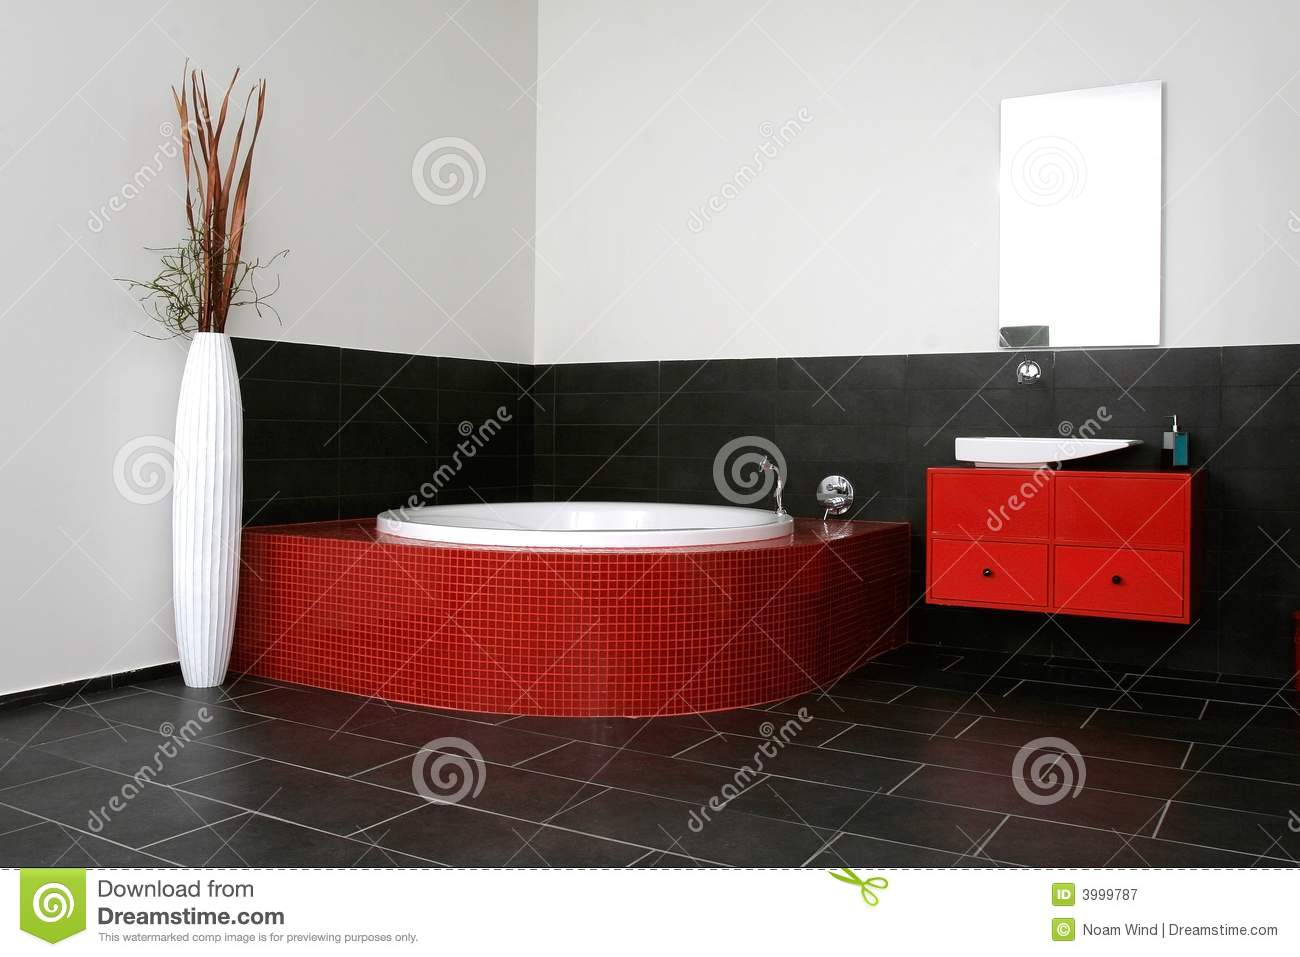 Bathroom Red bathroom with red walls stock photos - image: 21076703